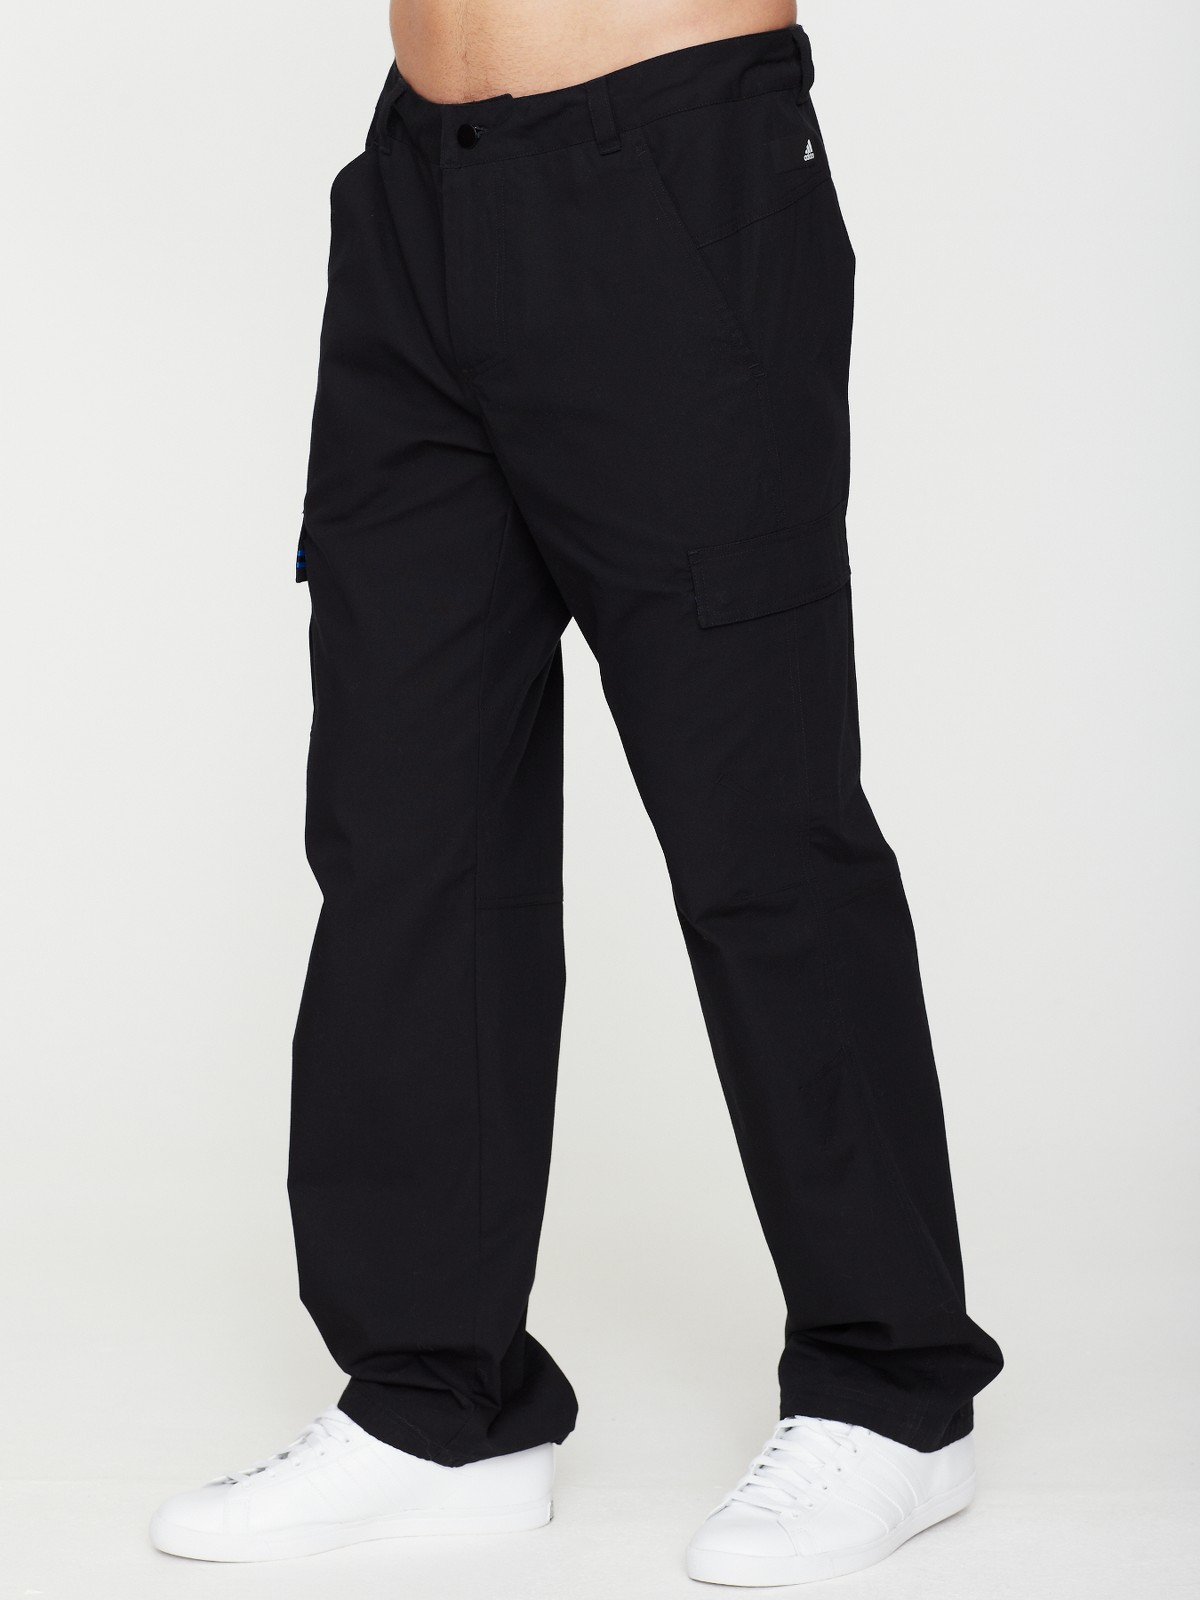 Men s black cargo pants